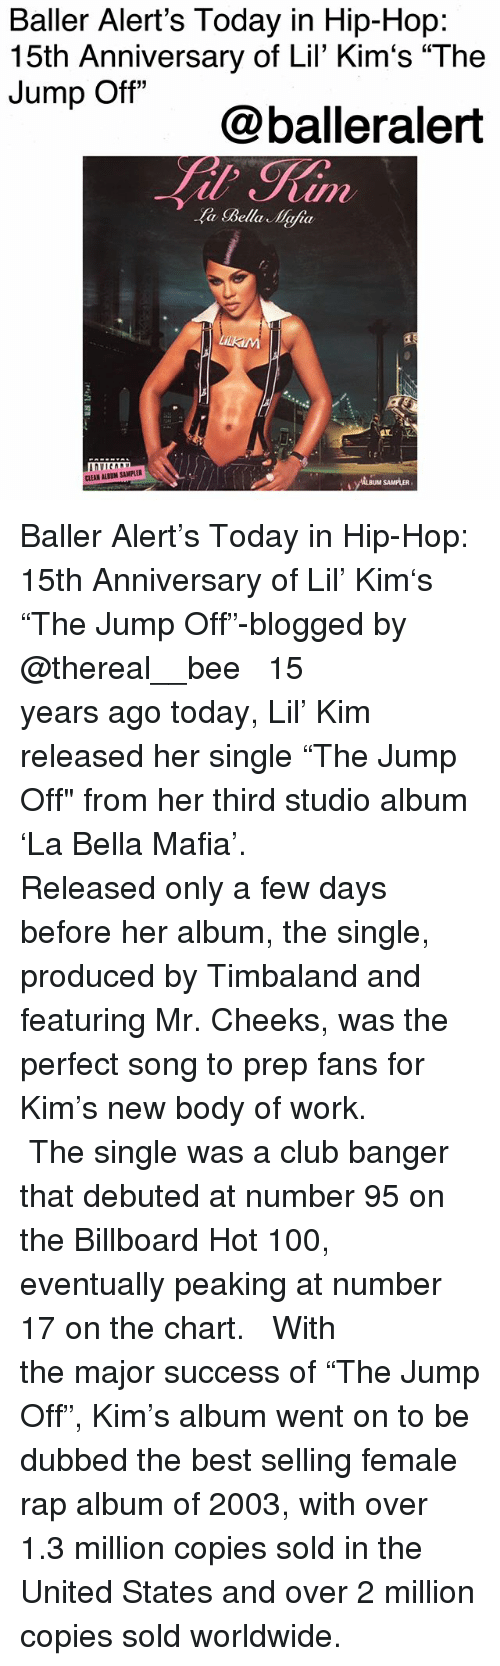 "Anaconda, Baller Alert, and Billboard: Baller Alert's Today in Hip-Hop:  15th Anniversary of Lil' Kim's ""The  Jump Off""  @balleralert  a Bella Mafia  AL  は,  CLEAN ALBUM SAMPLER  ALBUM SAMPLER Baller Alert's Today in Hip-Hop: 15th Anniversary of Lil' Kim's ""The Jump Off""-blogged by @thereal__bee ⠀⠀⠀⠀⠀⠀⠀⠀⠀ ⠀⠀ 15 years ago today, Lil' Kim released her single ""The Jump Off"" from her third studio album 'La Bella Mafia'. ⠀⠀⠀⠀⠀⠀⠀⠀⠀ ⠀⠀ Released only a few days before her album, the single, produced by Timbaland and featuring Mr. Cheeks, was the perfect song to prep fans for Kim's new body of work. ⠀⠀⠀⠀⠀⠀⠀⠀⠀ ⠀⠀ The single was a club banger that debuted at number 95 on the Billboard Hot 100, eventually peaking at number 17 on the chart. ⠀⠀⠀⠀⠀⠀⠀⠀⠀ ⠀⠀ With the major success of ""The Jump Off"", Kim's album went on to be dubbed the best selling female rap album of 2003, with over 1.3 million copies sold in the United States and over 2 million copies sold worldwide."